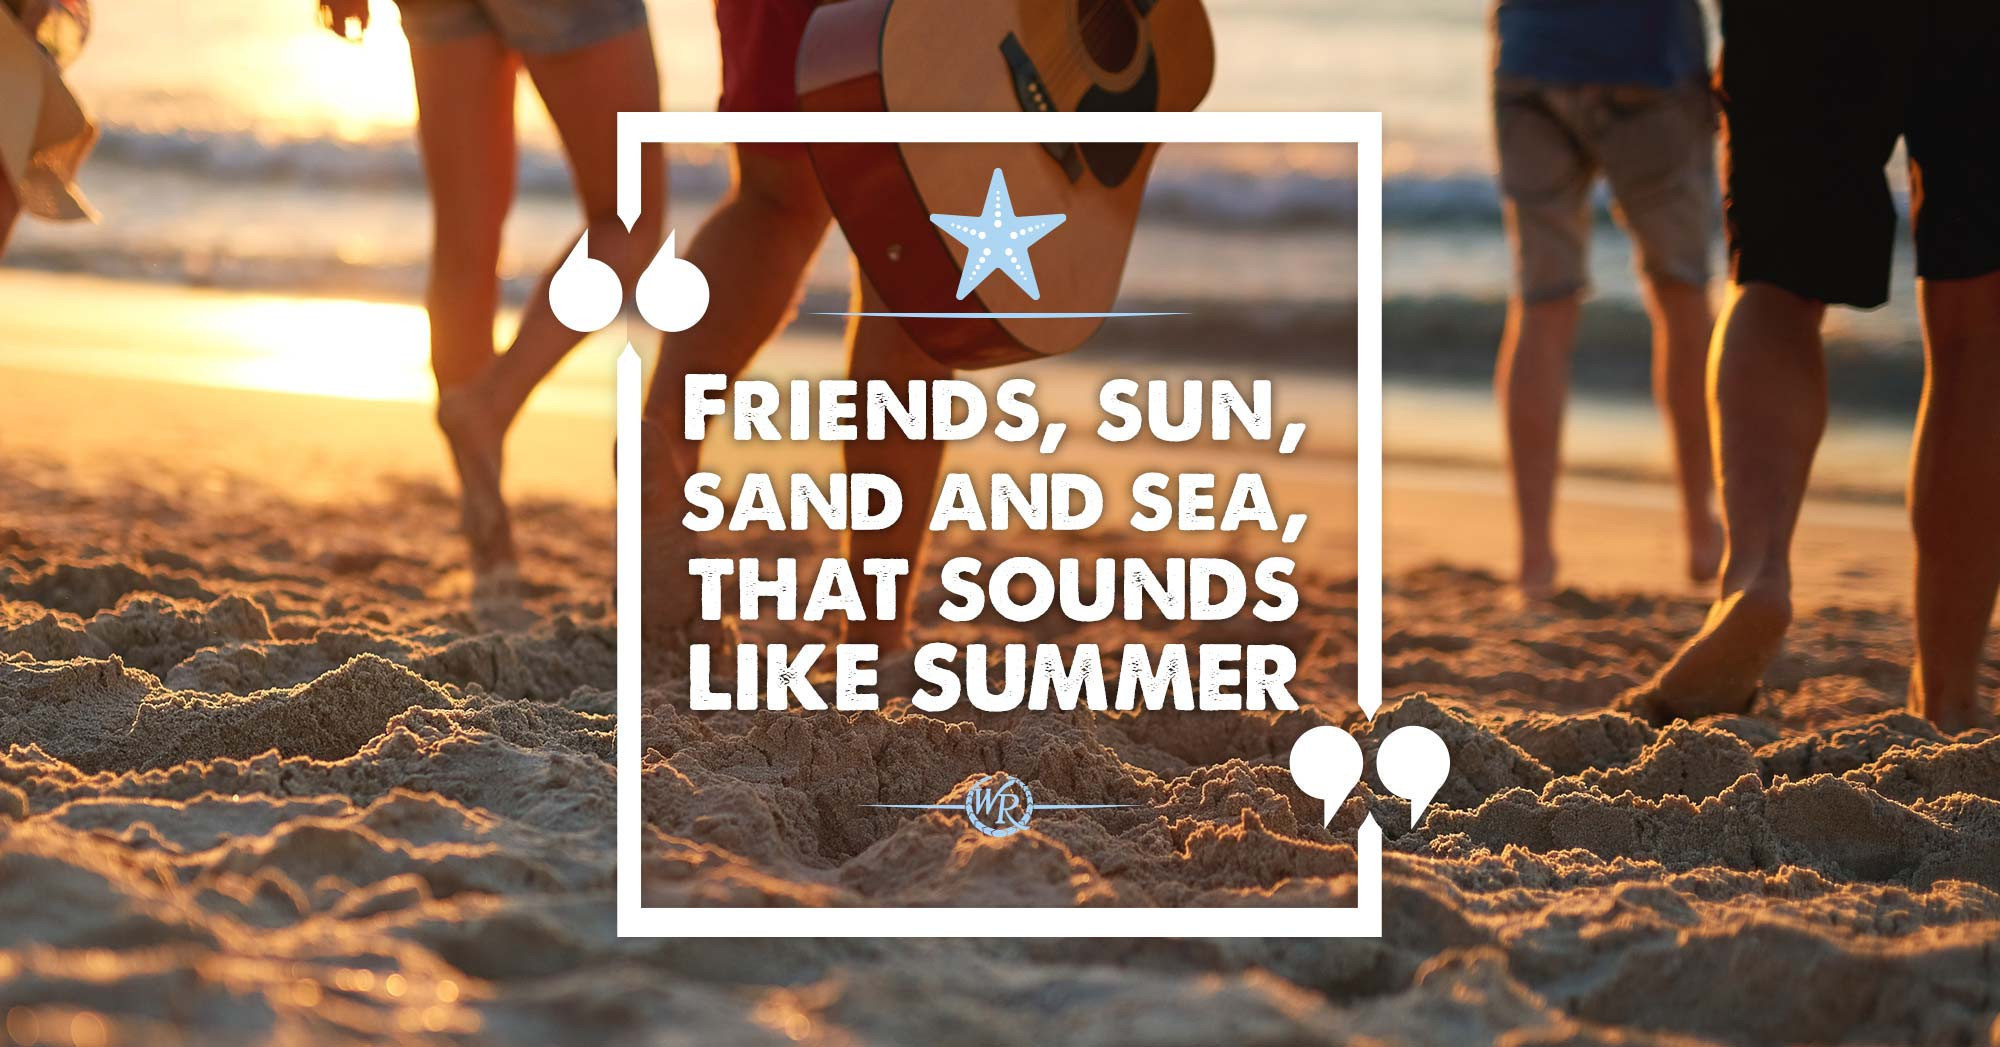 Friends, Sun, Sand and Sea, That Sounds Like Summer To Me. | Inspirational Travel Quotes